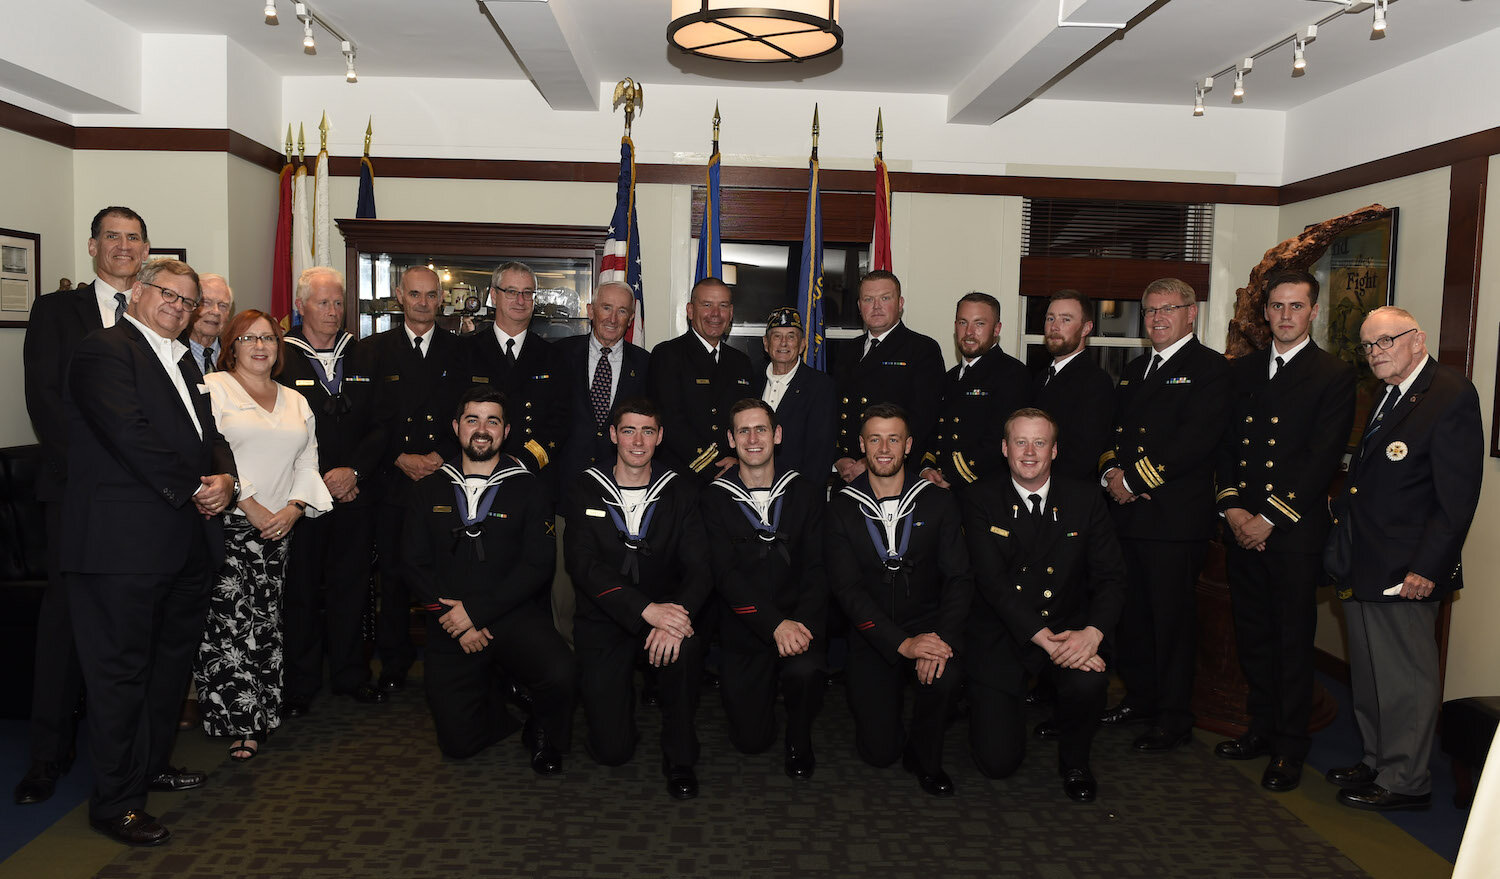 Irish naval vessel LE Samuel Beckett was in NYC for the UN General Assembly and our members were on hand to greet the officers and crew on October 1, 2019. American Legion Post 754, one of our frequent partners, hosted the event in their space at the New York Athletic Club.